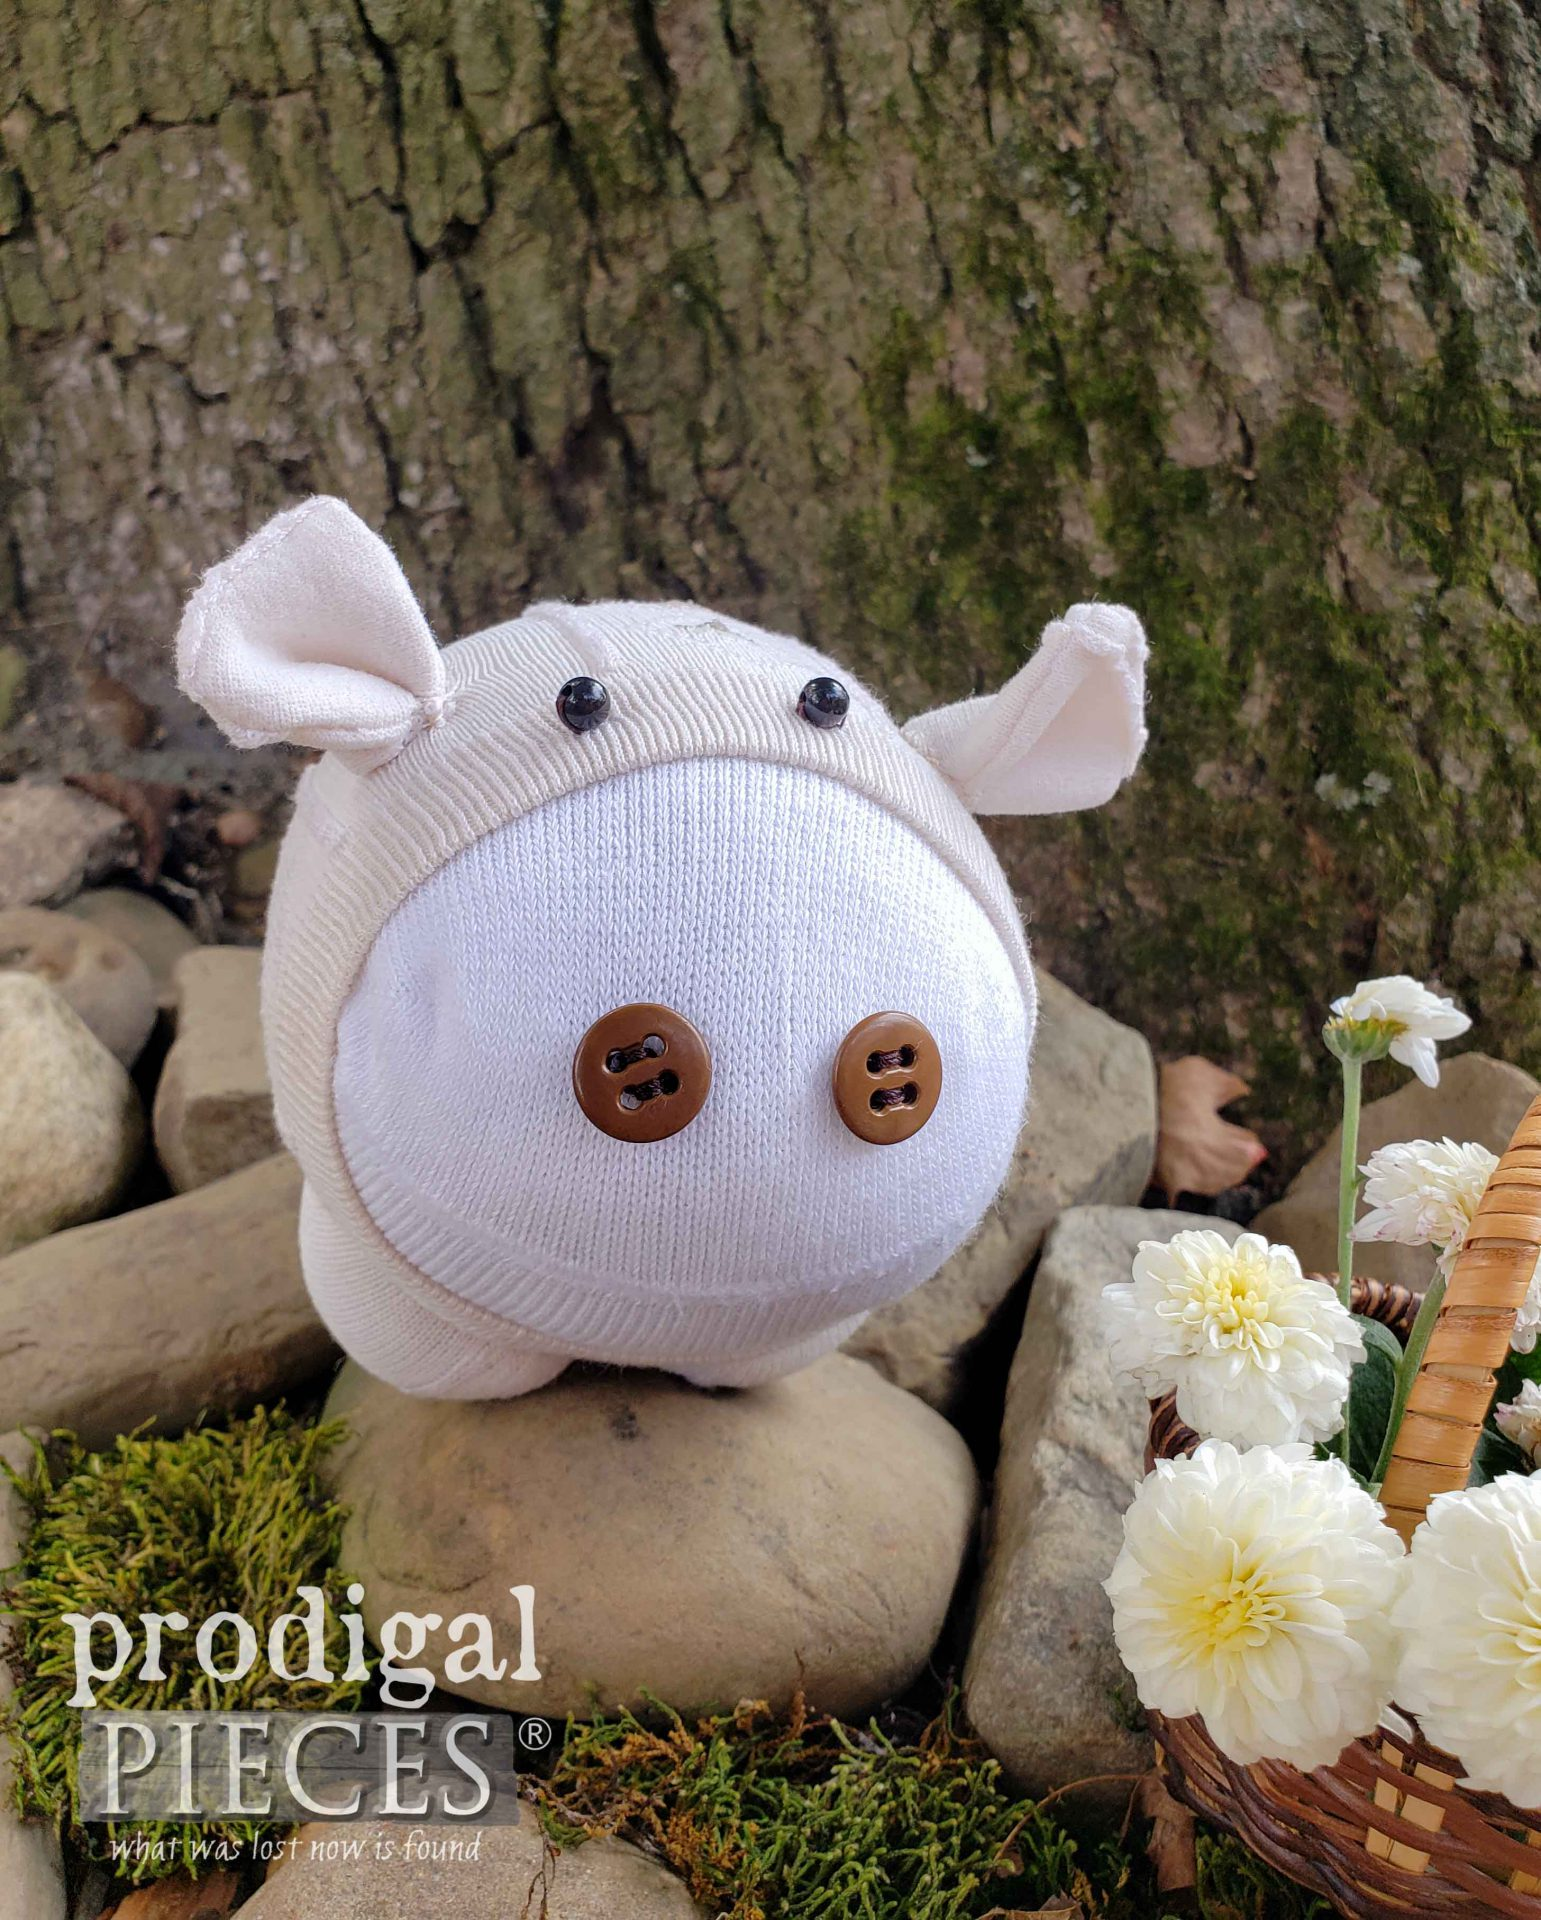 Cute Handmade Sock Pig by Larissa of Prodigal Pieces | prodigalpieces.com #prodigalpieces #diy #handmade #toys #giftidea #crafts #sewing